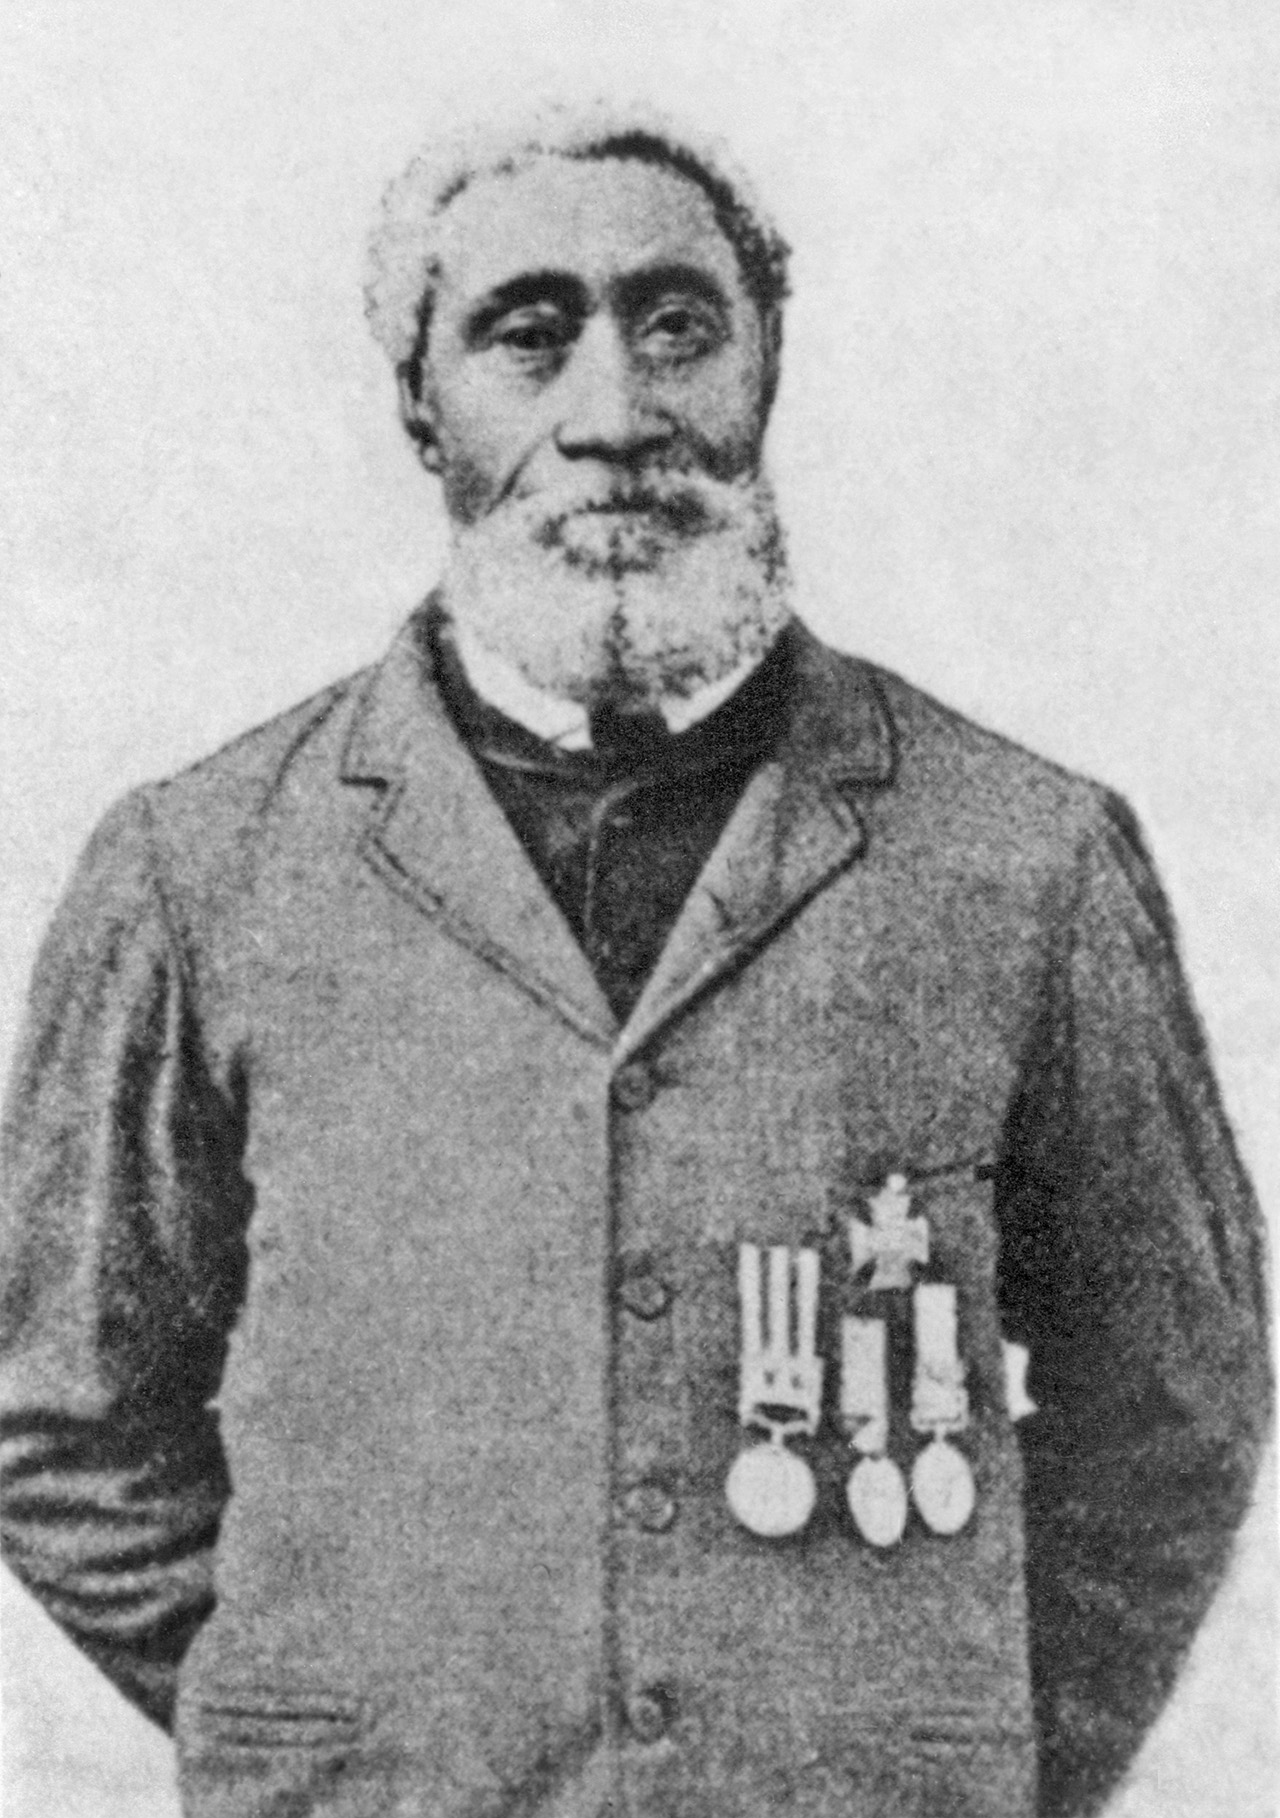 Petty Officer (PO) William Hall VC